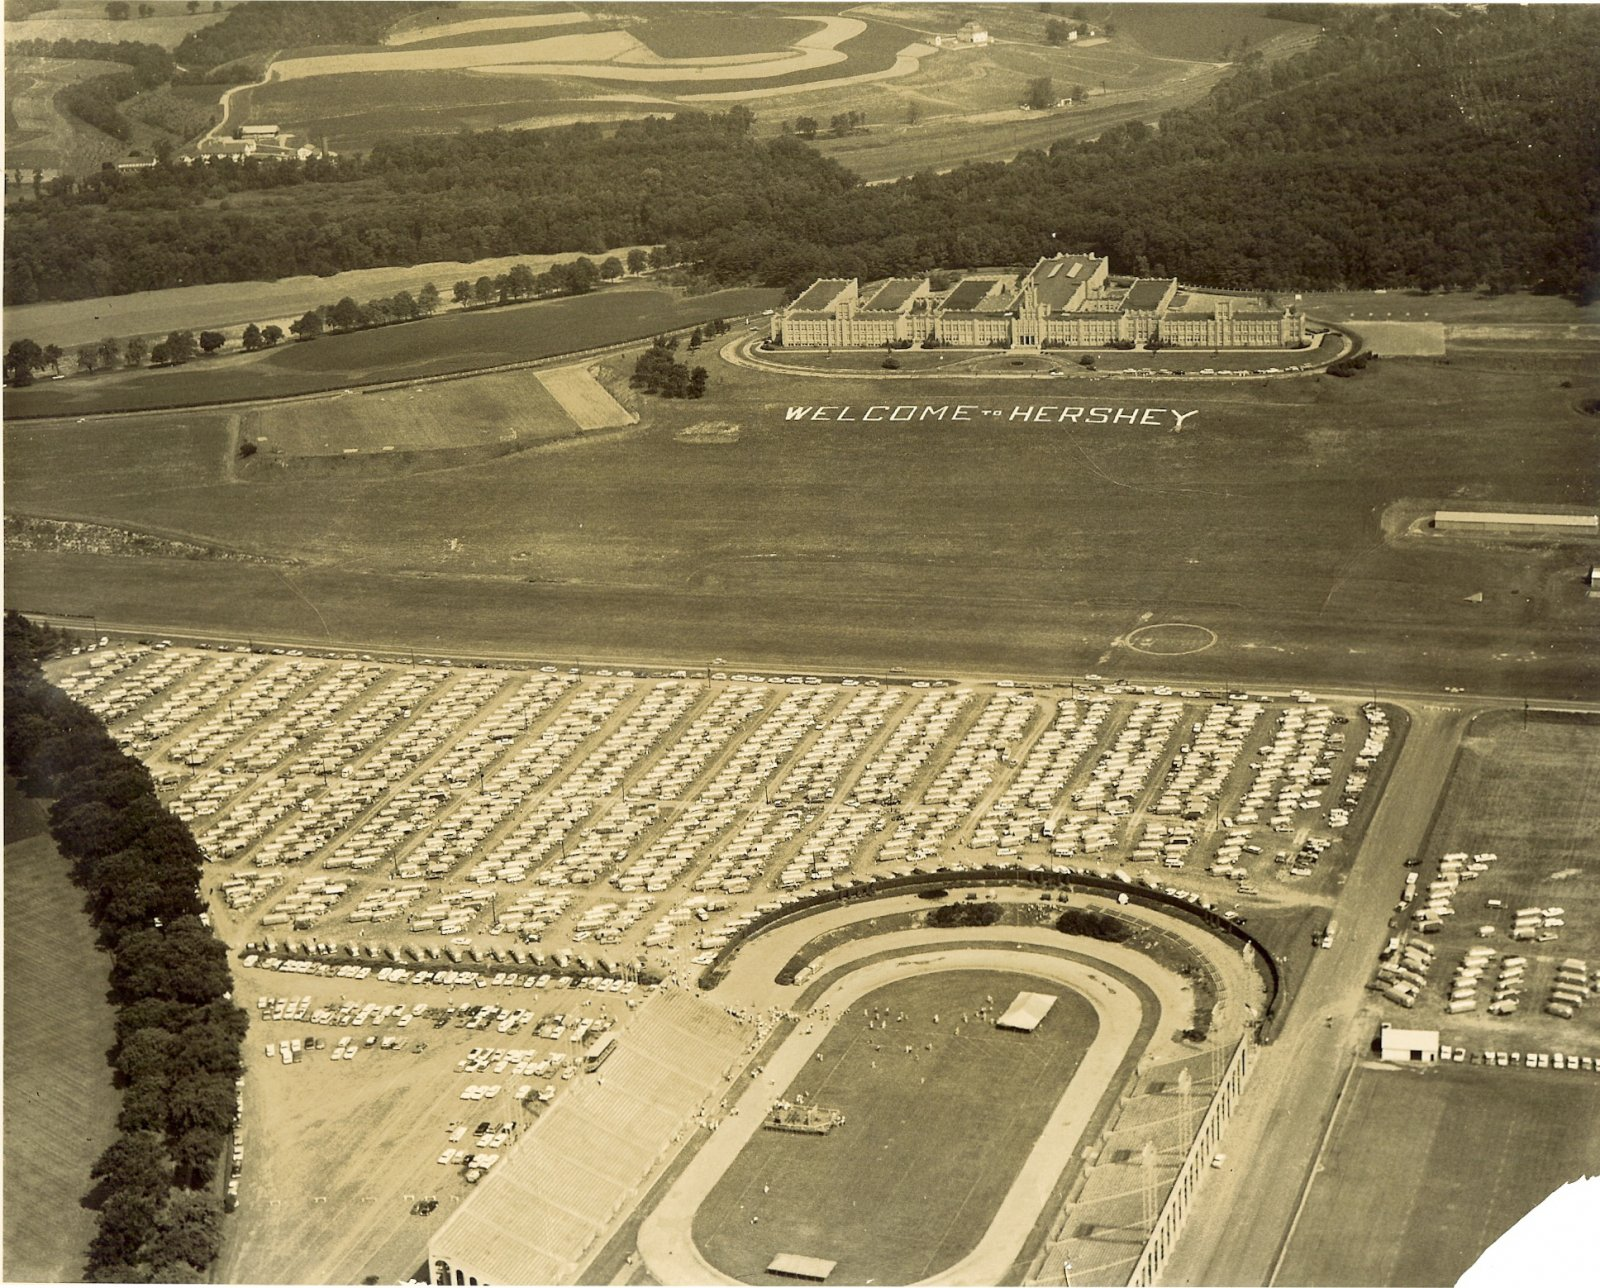 Click image for larger version  Name:Hershey Rally 1961.jpg Views:99 Size:494.4 KB ID:115554